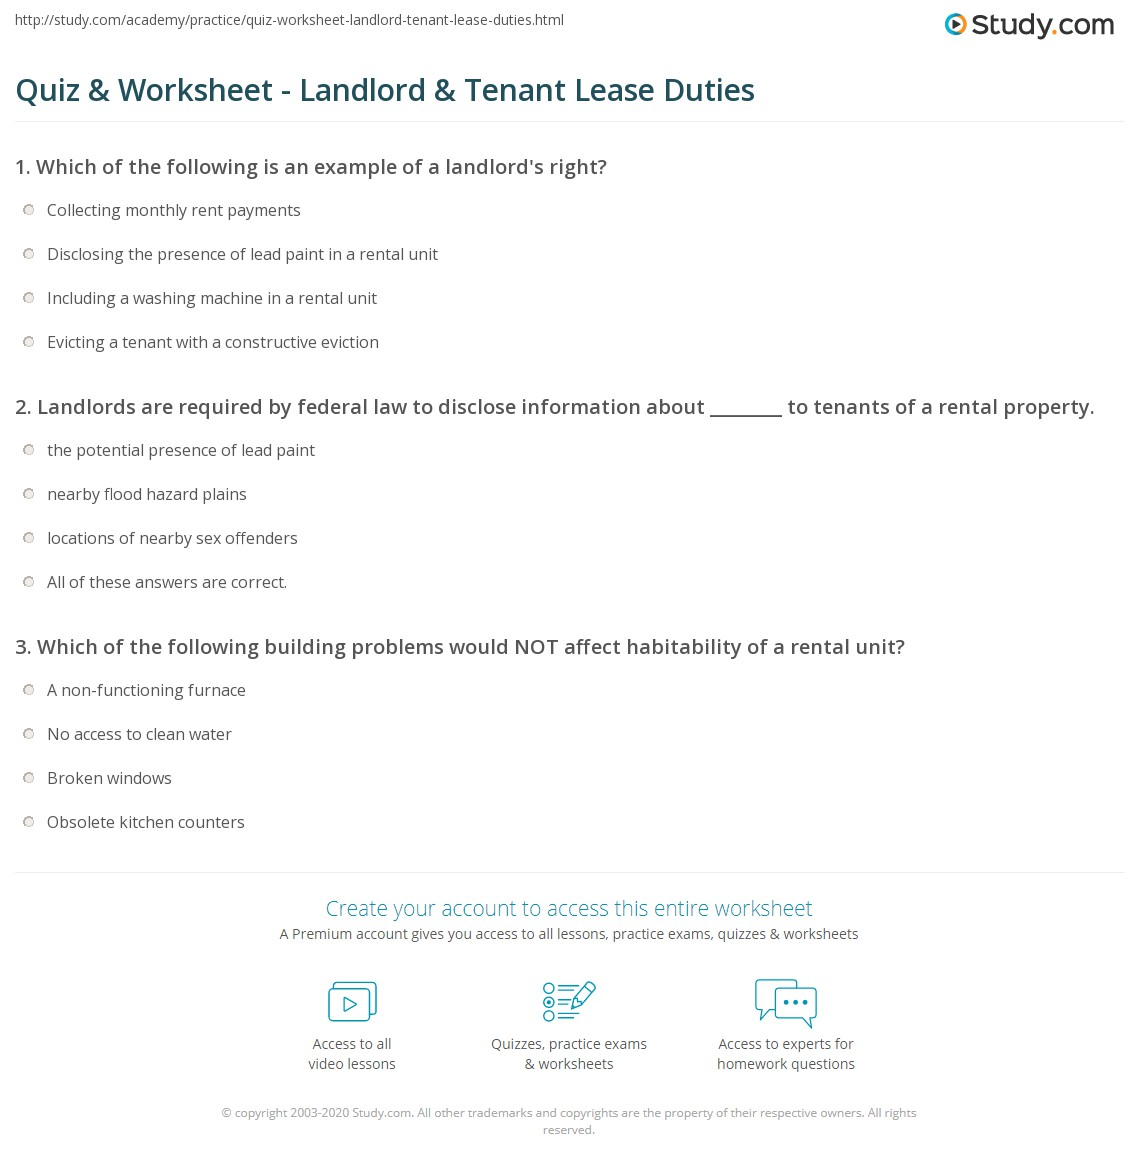 an analysis of the tenant landlord relationship State laws cover many aspects of the landlord tenant relationship, from security deposits to landlord access to rental property the charts in this section include the key statutes pertaining to landlord-tenant law in each state, as well as specific rules on issues such as security deposit limits.